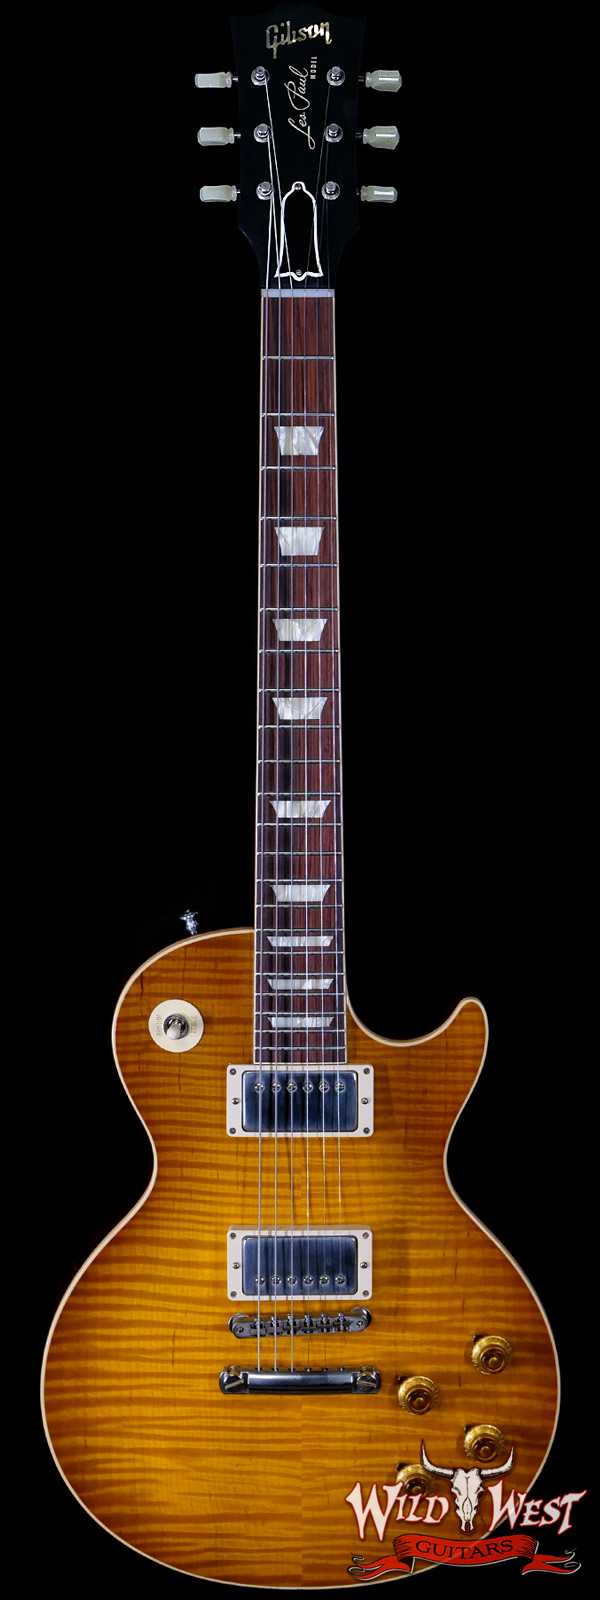 Gibson Custom Shop M2M Hand Selected Kill Top 60th Anniversary 1959 Les Paul Standard VOS Dirty Lemon Fade 9.05 LBS